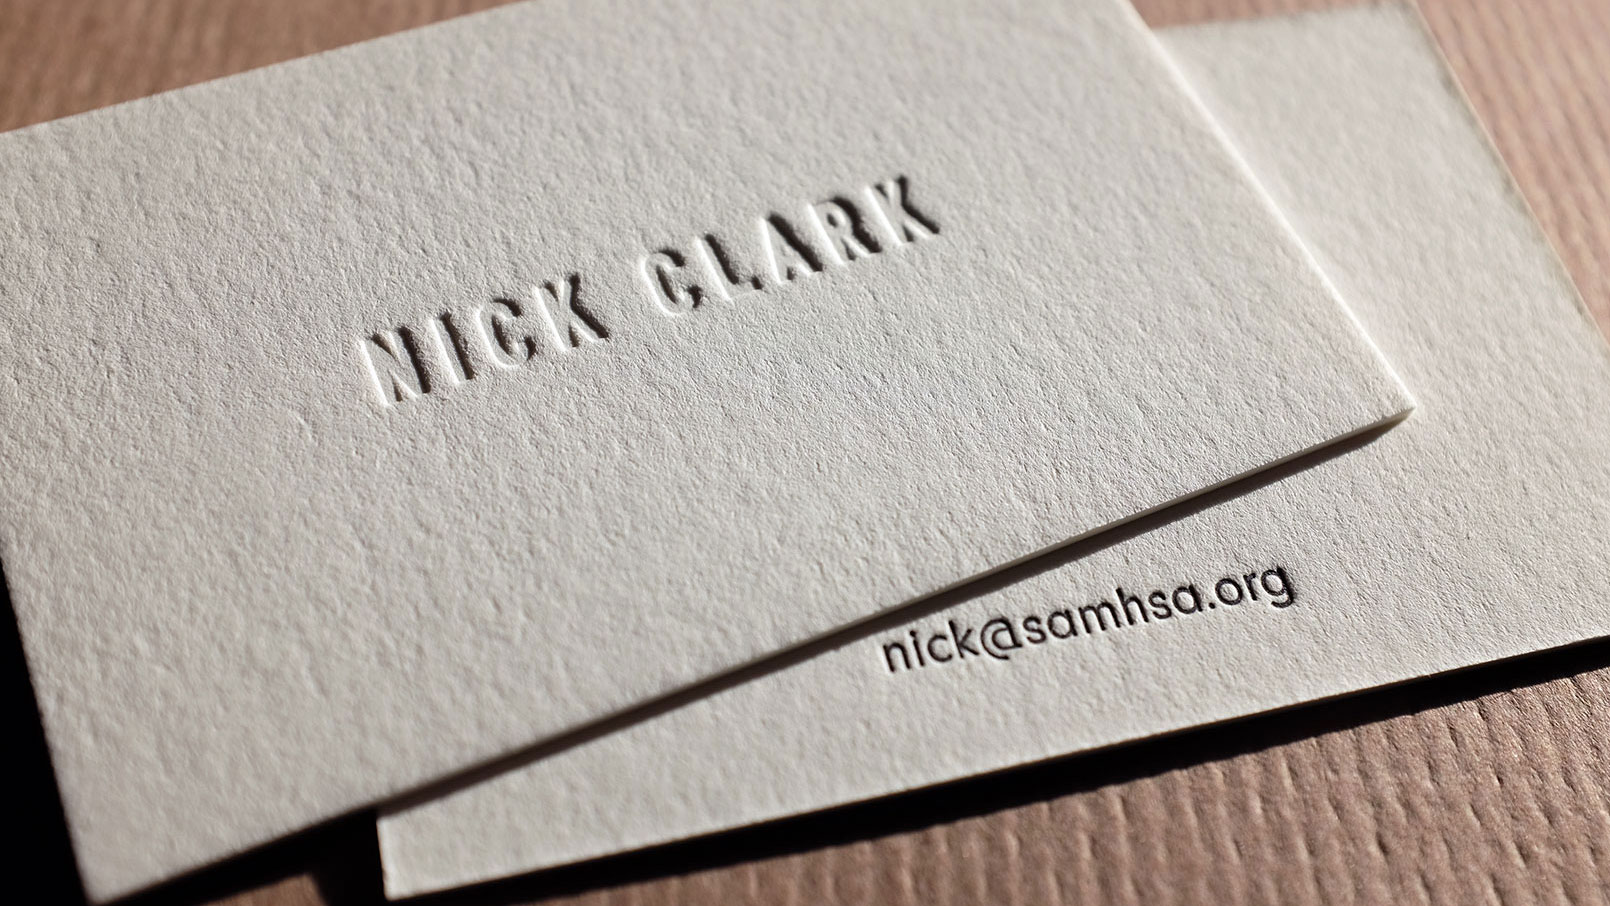 Business cards pritning nyc printing near me bestofprinting letterpress ultra thick business card printing long island magicingreecefo Images